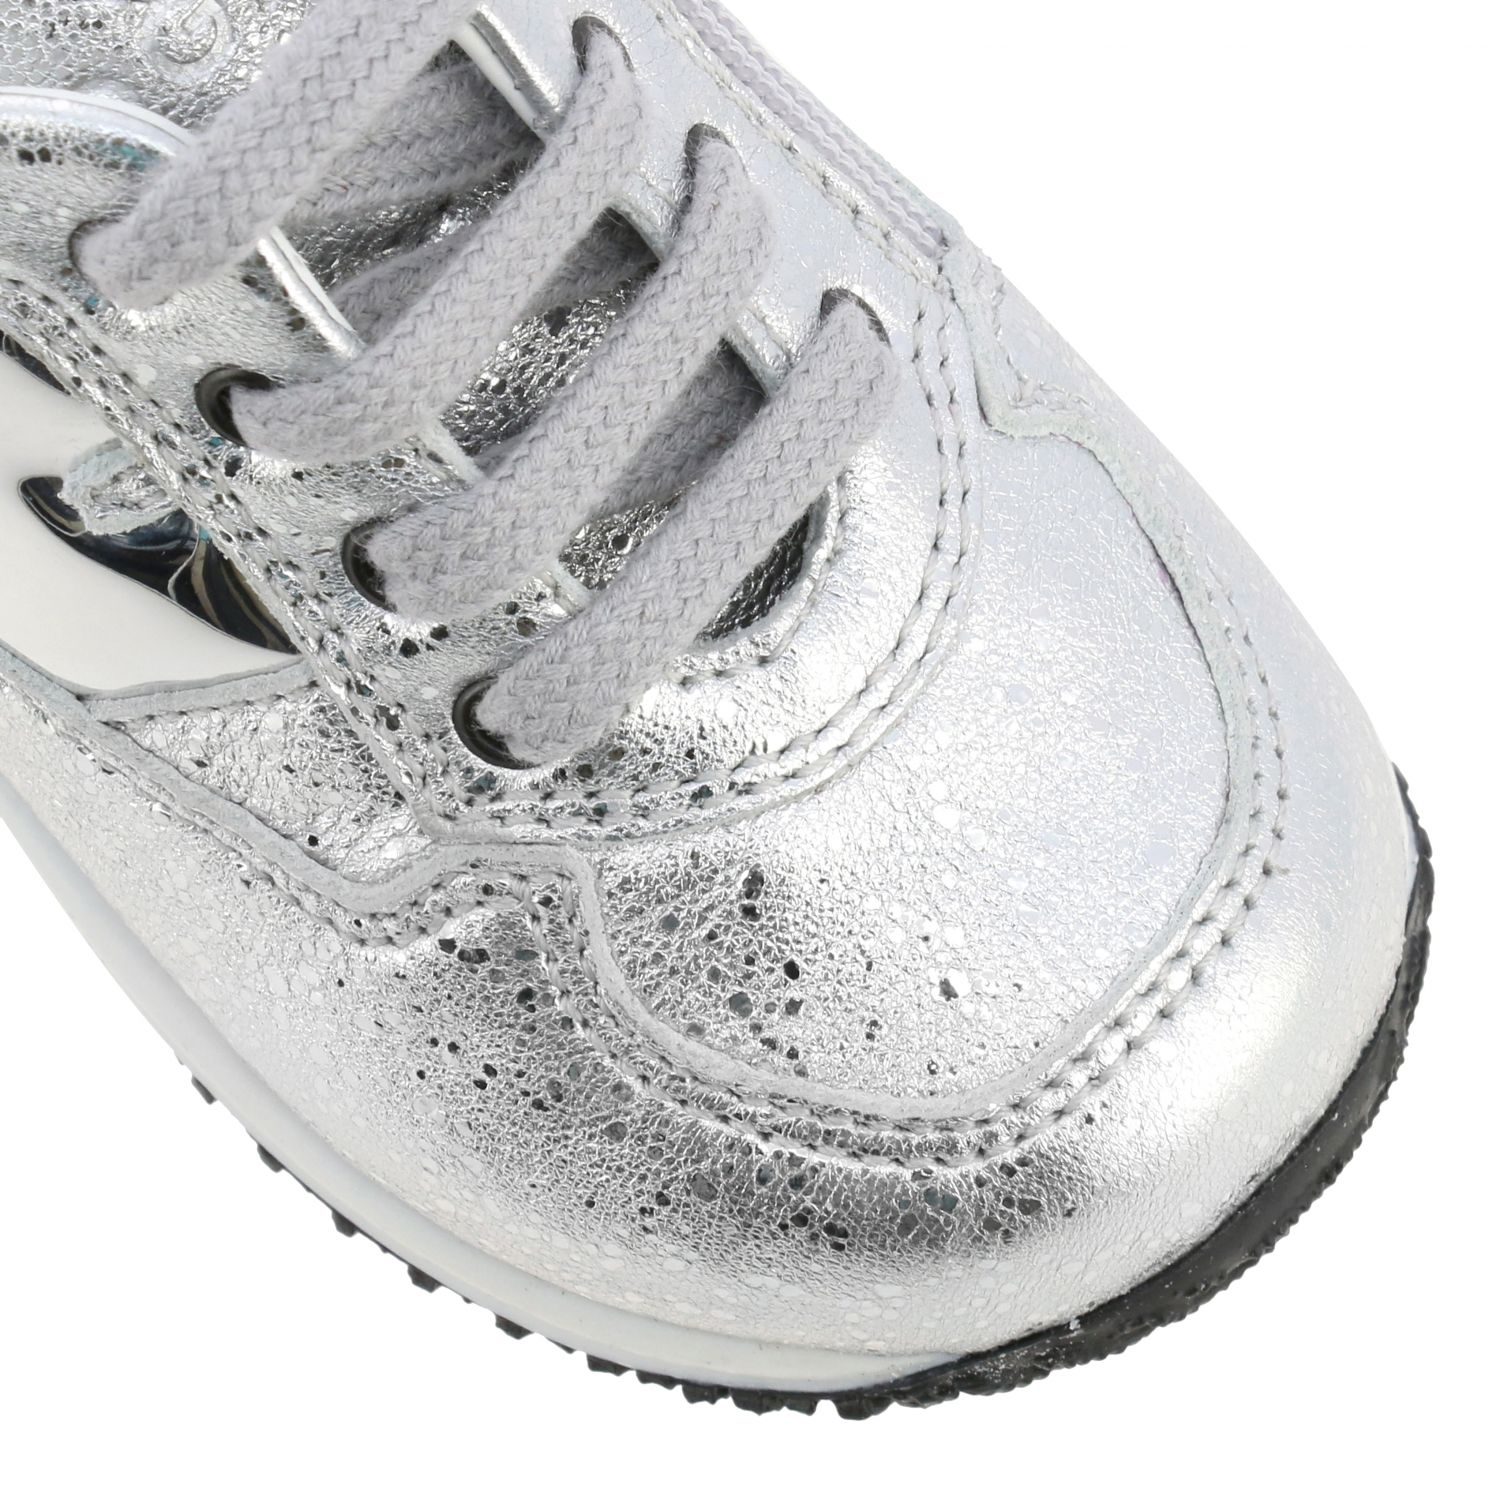 Shoes Hogan Baby: Shoes kids Hogan Baby silver 4